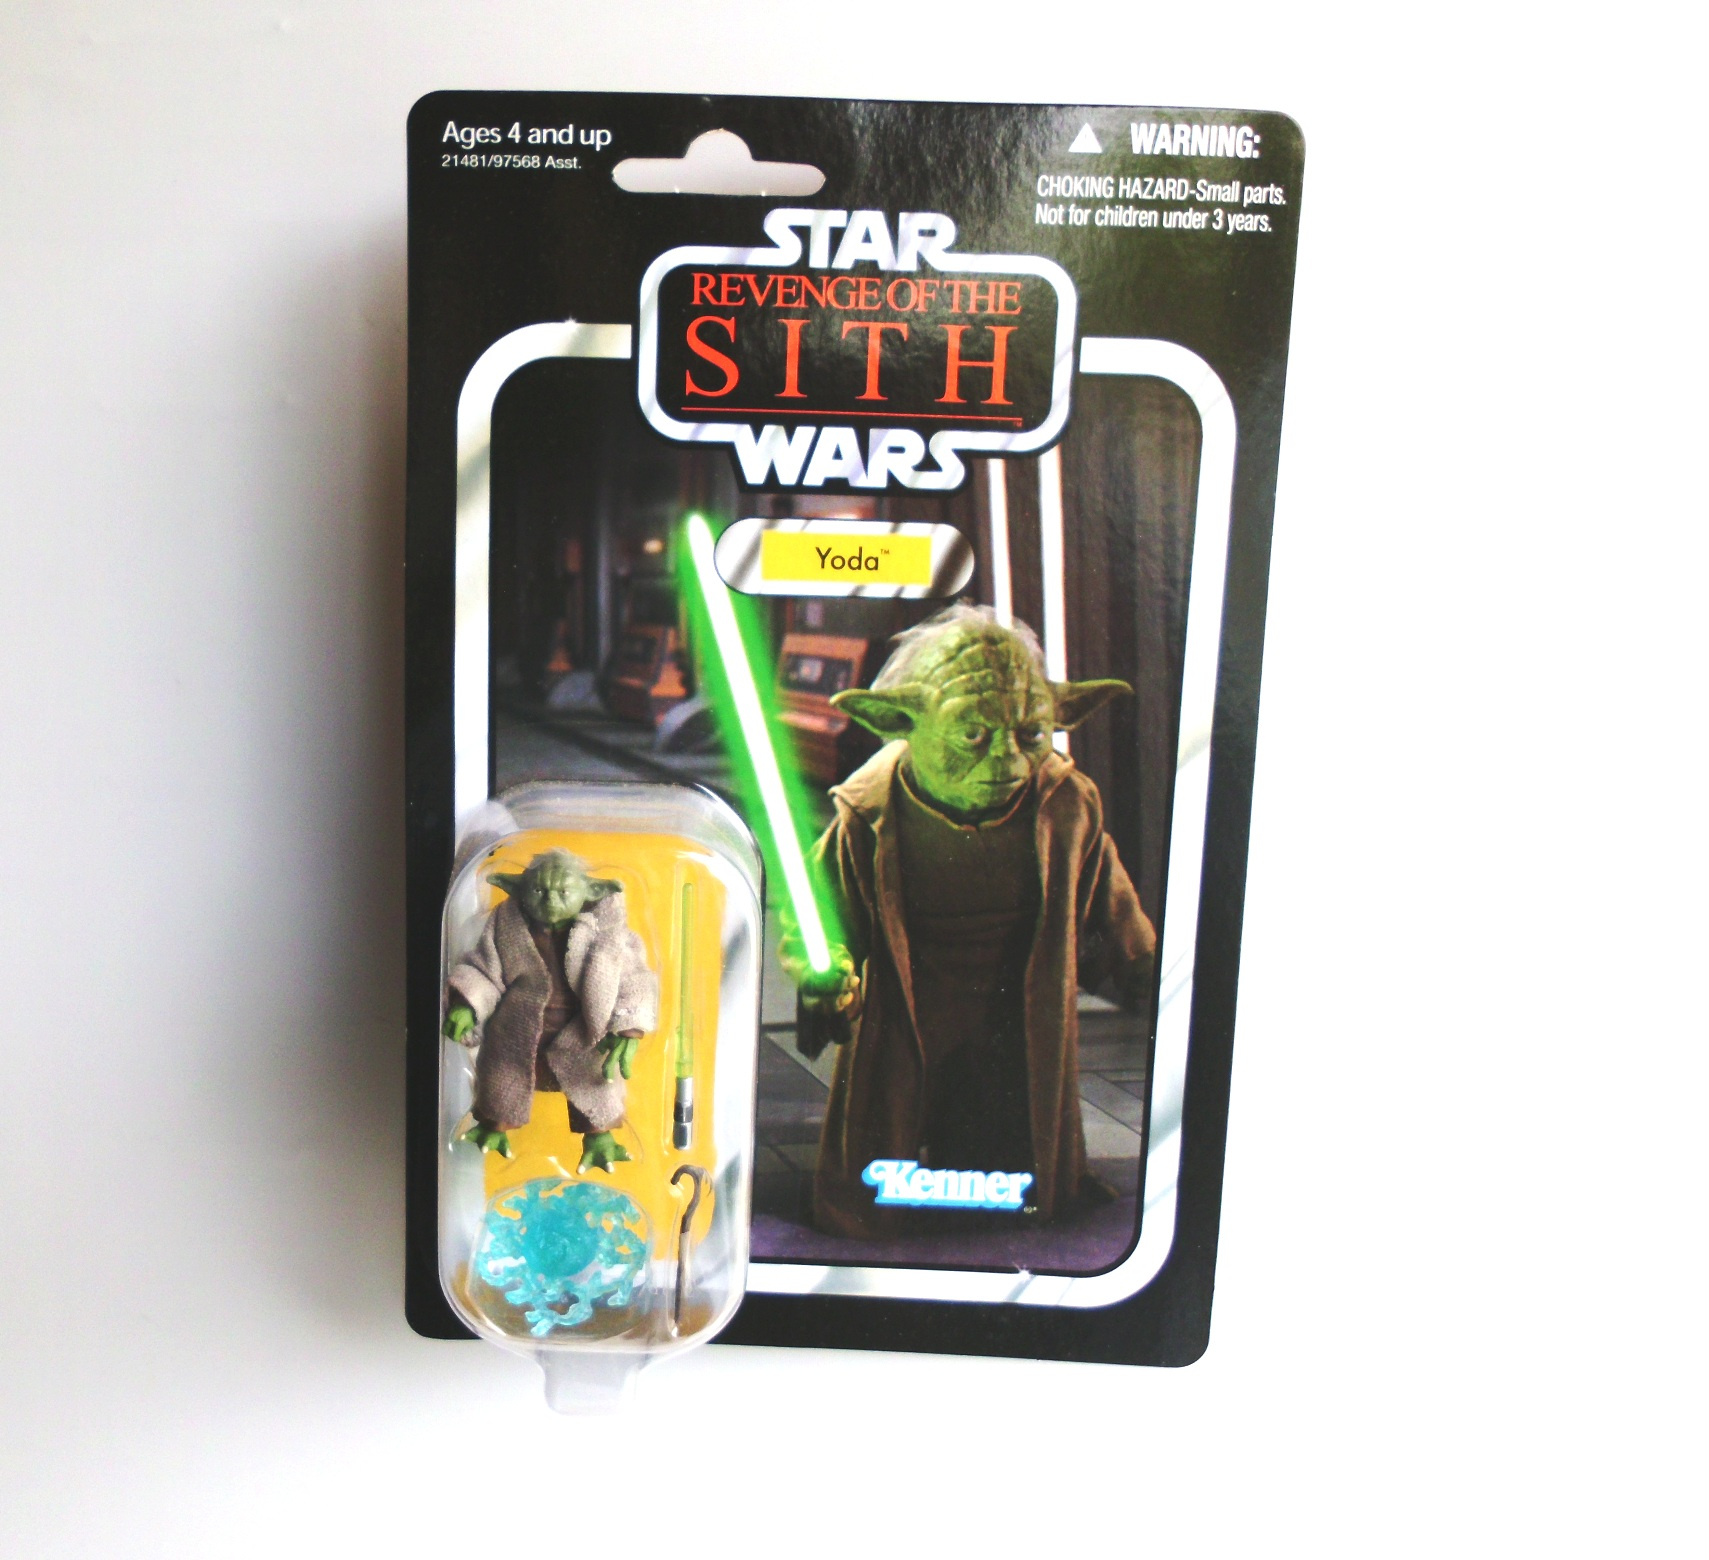 Yoda Classic Revenge Of The Sith Film Star Wars The Vintage Collection Revenge Of The Sith Series Vc 20 Rare Vintage 2010 Now And Then Collectibles